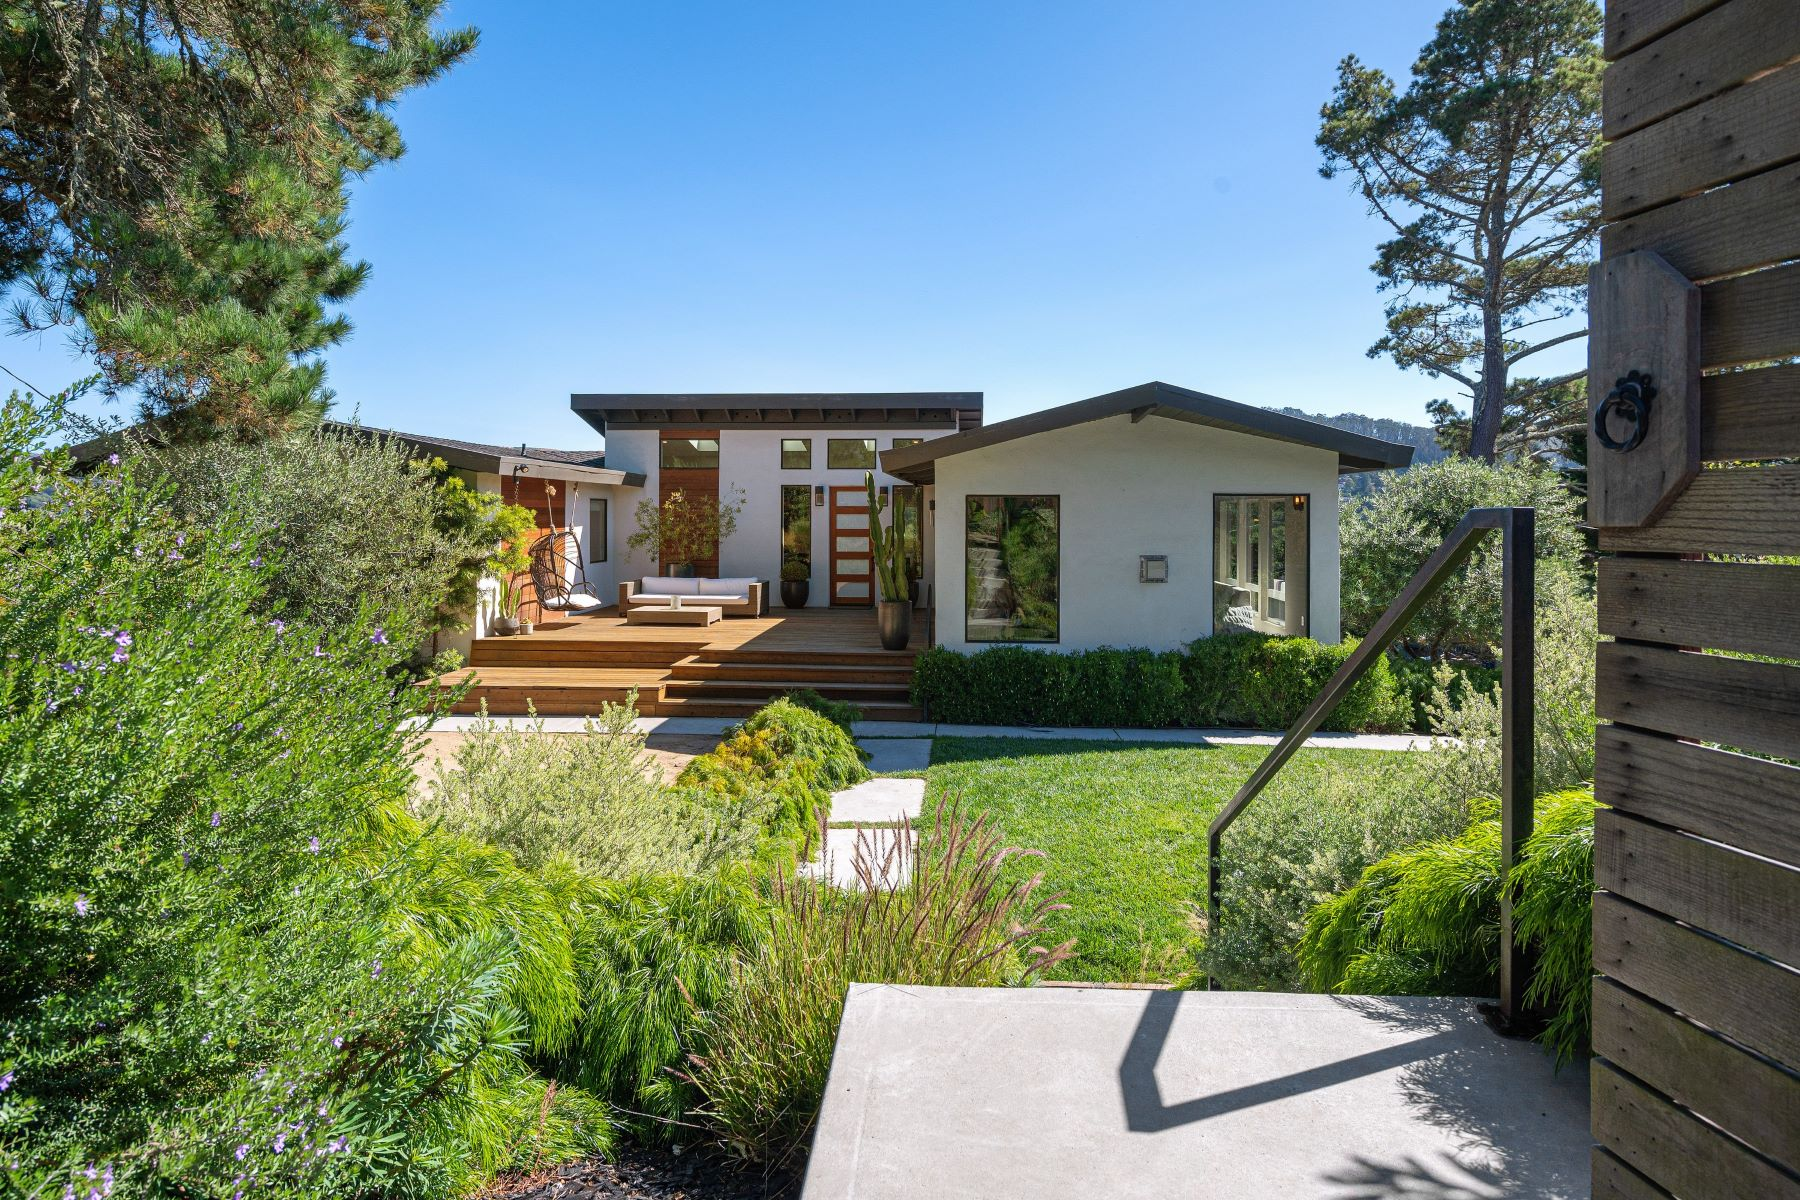 Single Family Homes for Sale at Dazzling Remodeled Entertainers Home 112 Peralta Avenue, Mill Valley, California 94941 United States